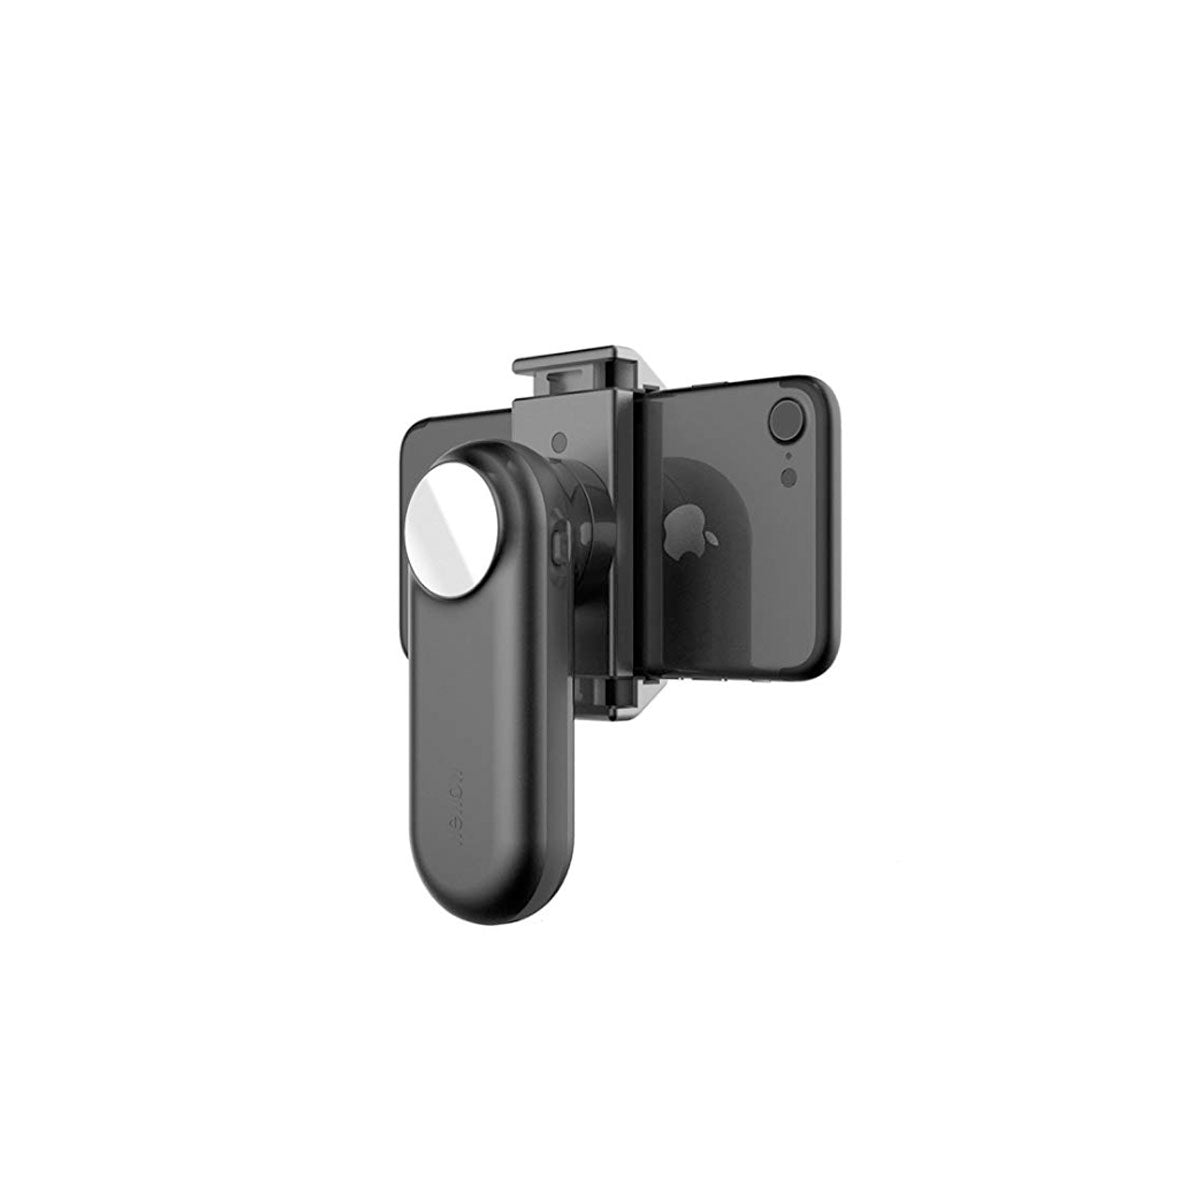 Handheld Compact Gimbal Stabilizer with a Face Mirror & Led Light